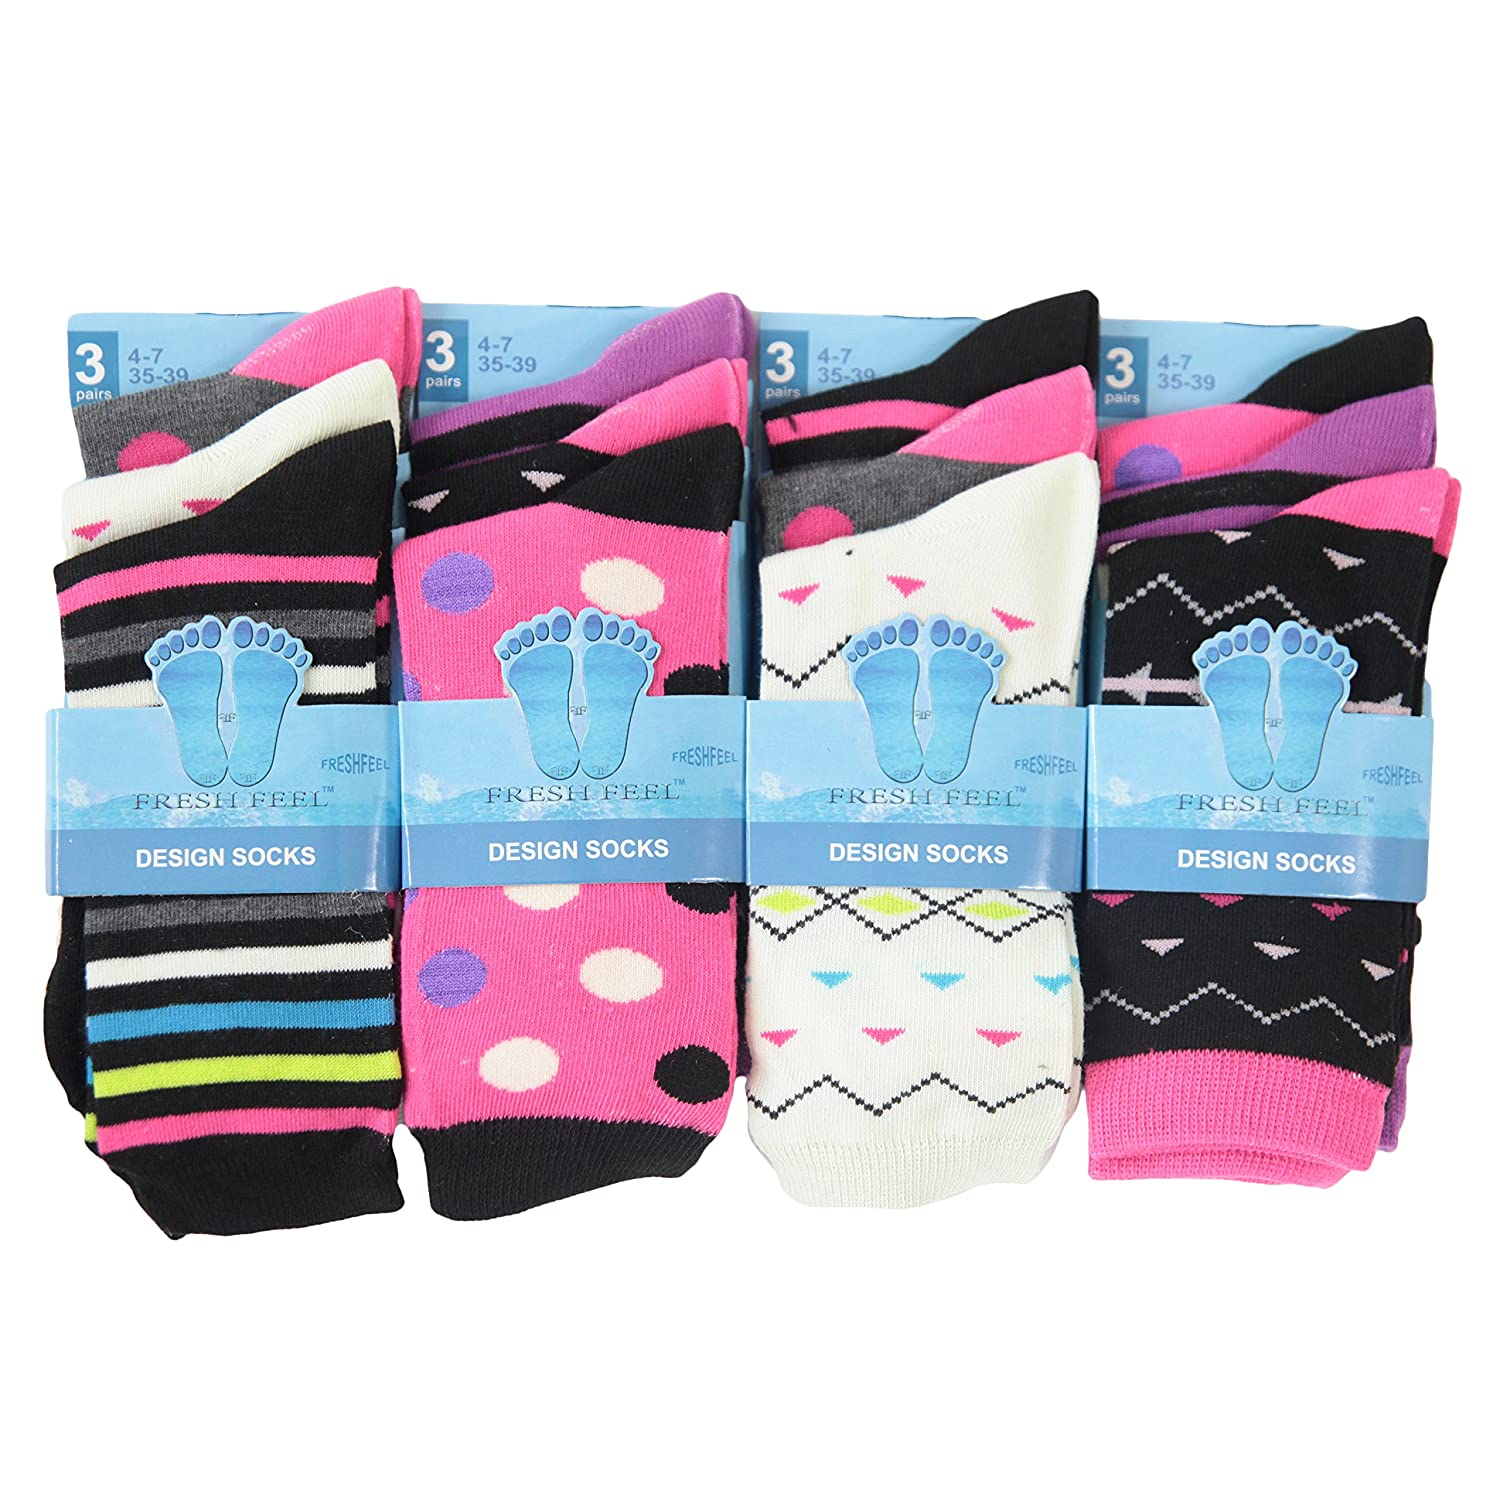 12pairs Ladies Multi Colour Funky Spots Stripes Zig Zag Design Cotton Blend Socks Womens Office Everyday Work Socks